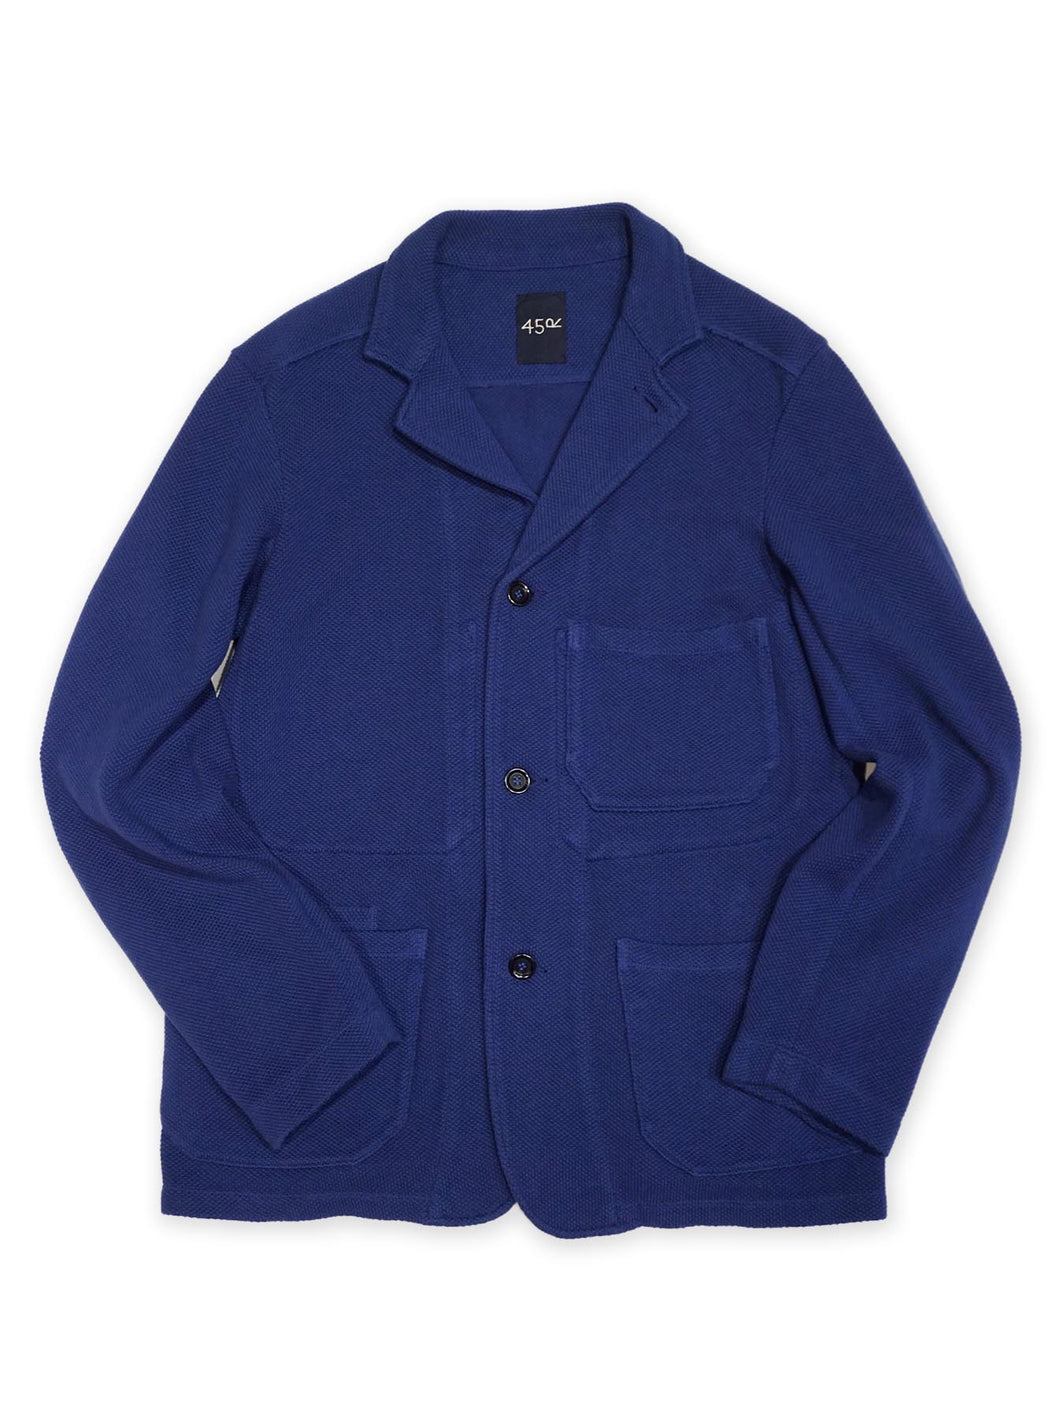 Pique Jacket in Navy